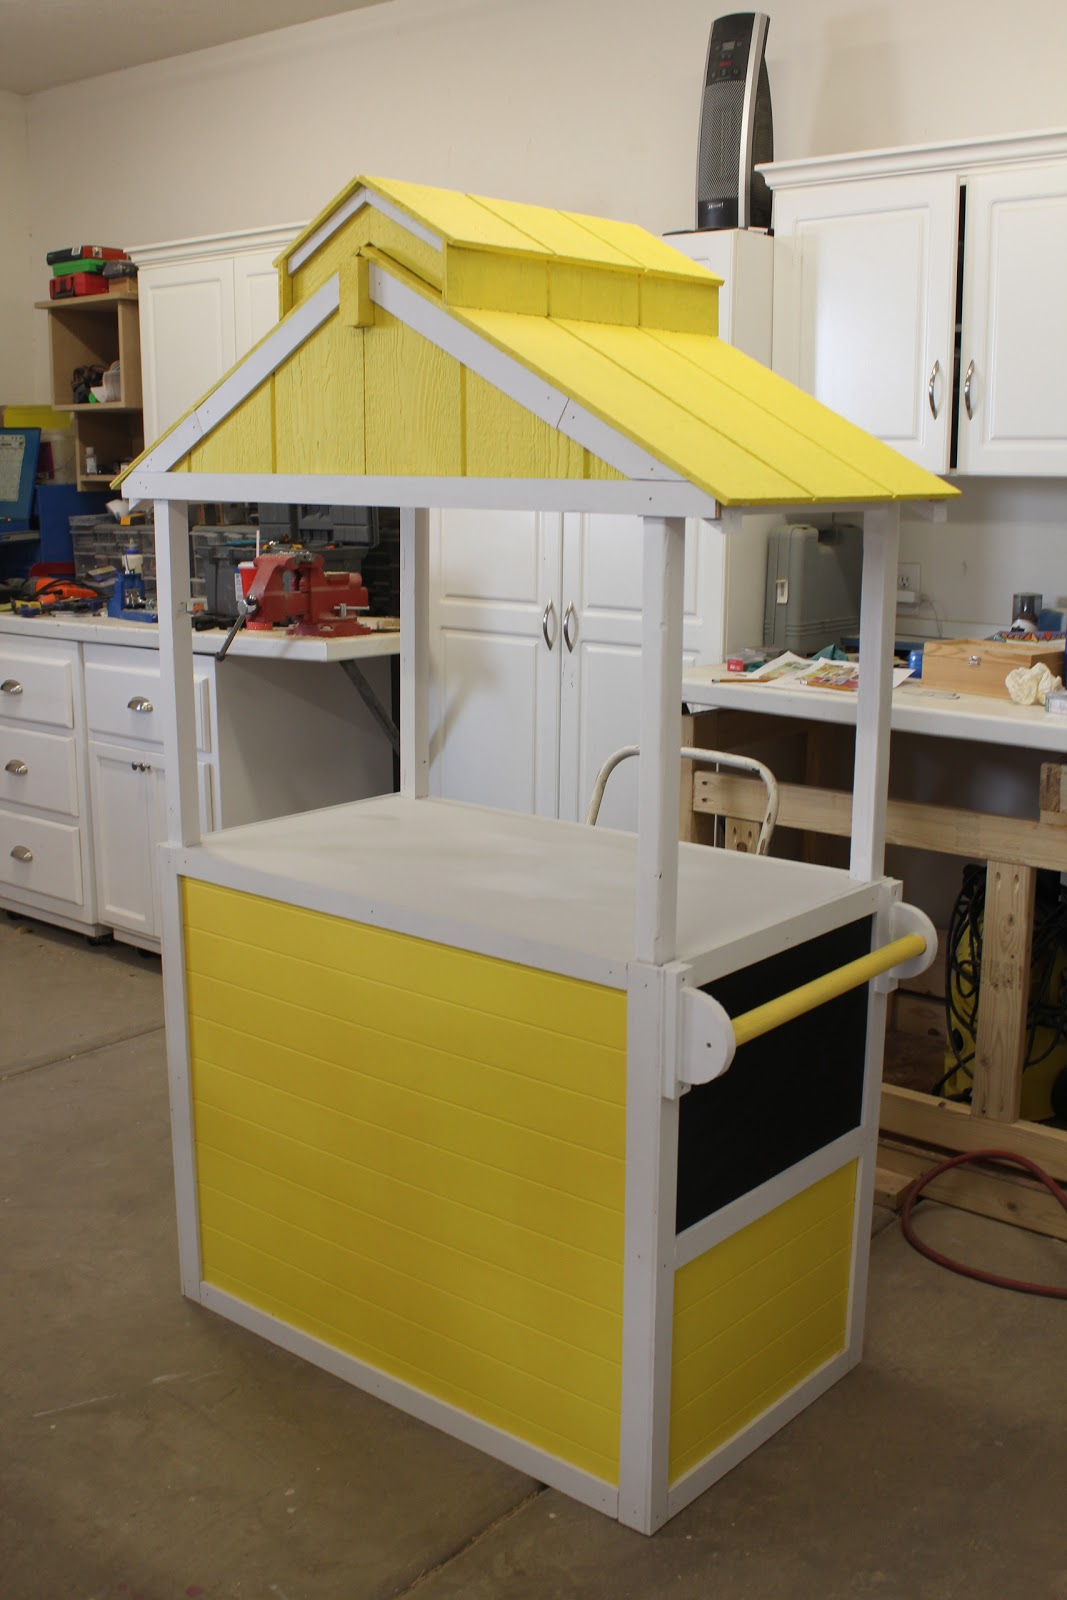 You 39 ve been framed lemonade anyone for How to build a lemonade stand on wheels